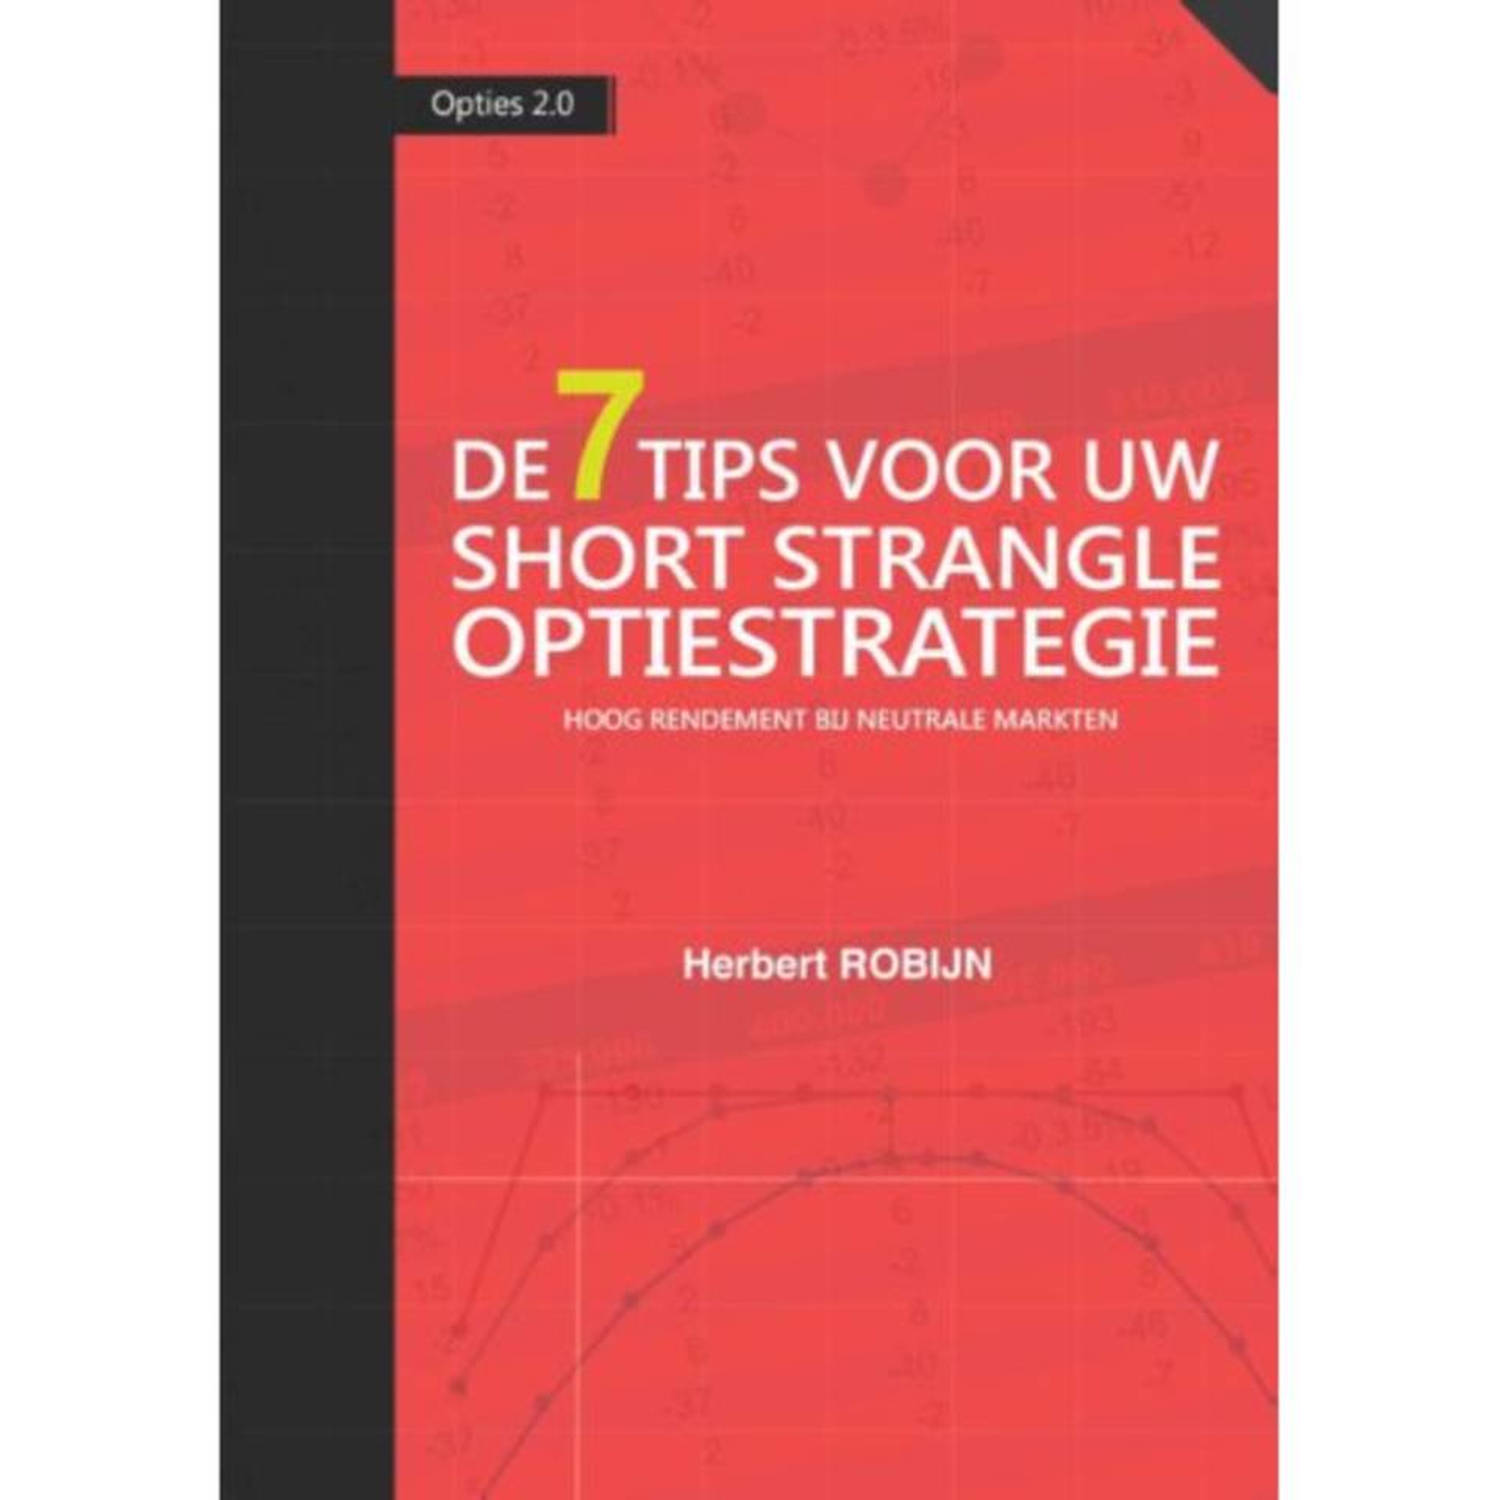 De 7 Tips voor uw short strangle optiestrategie -